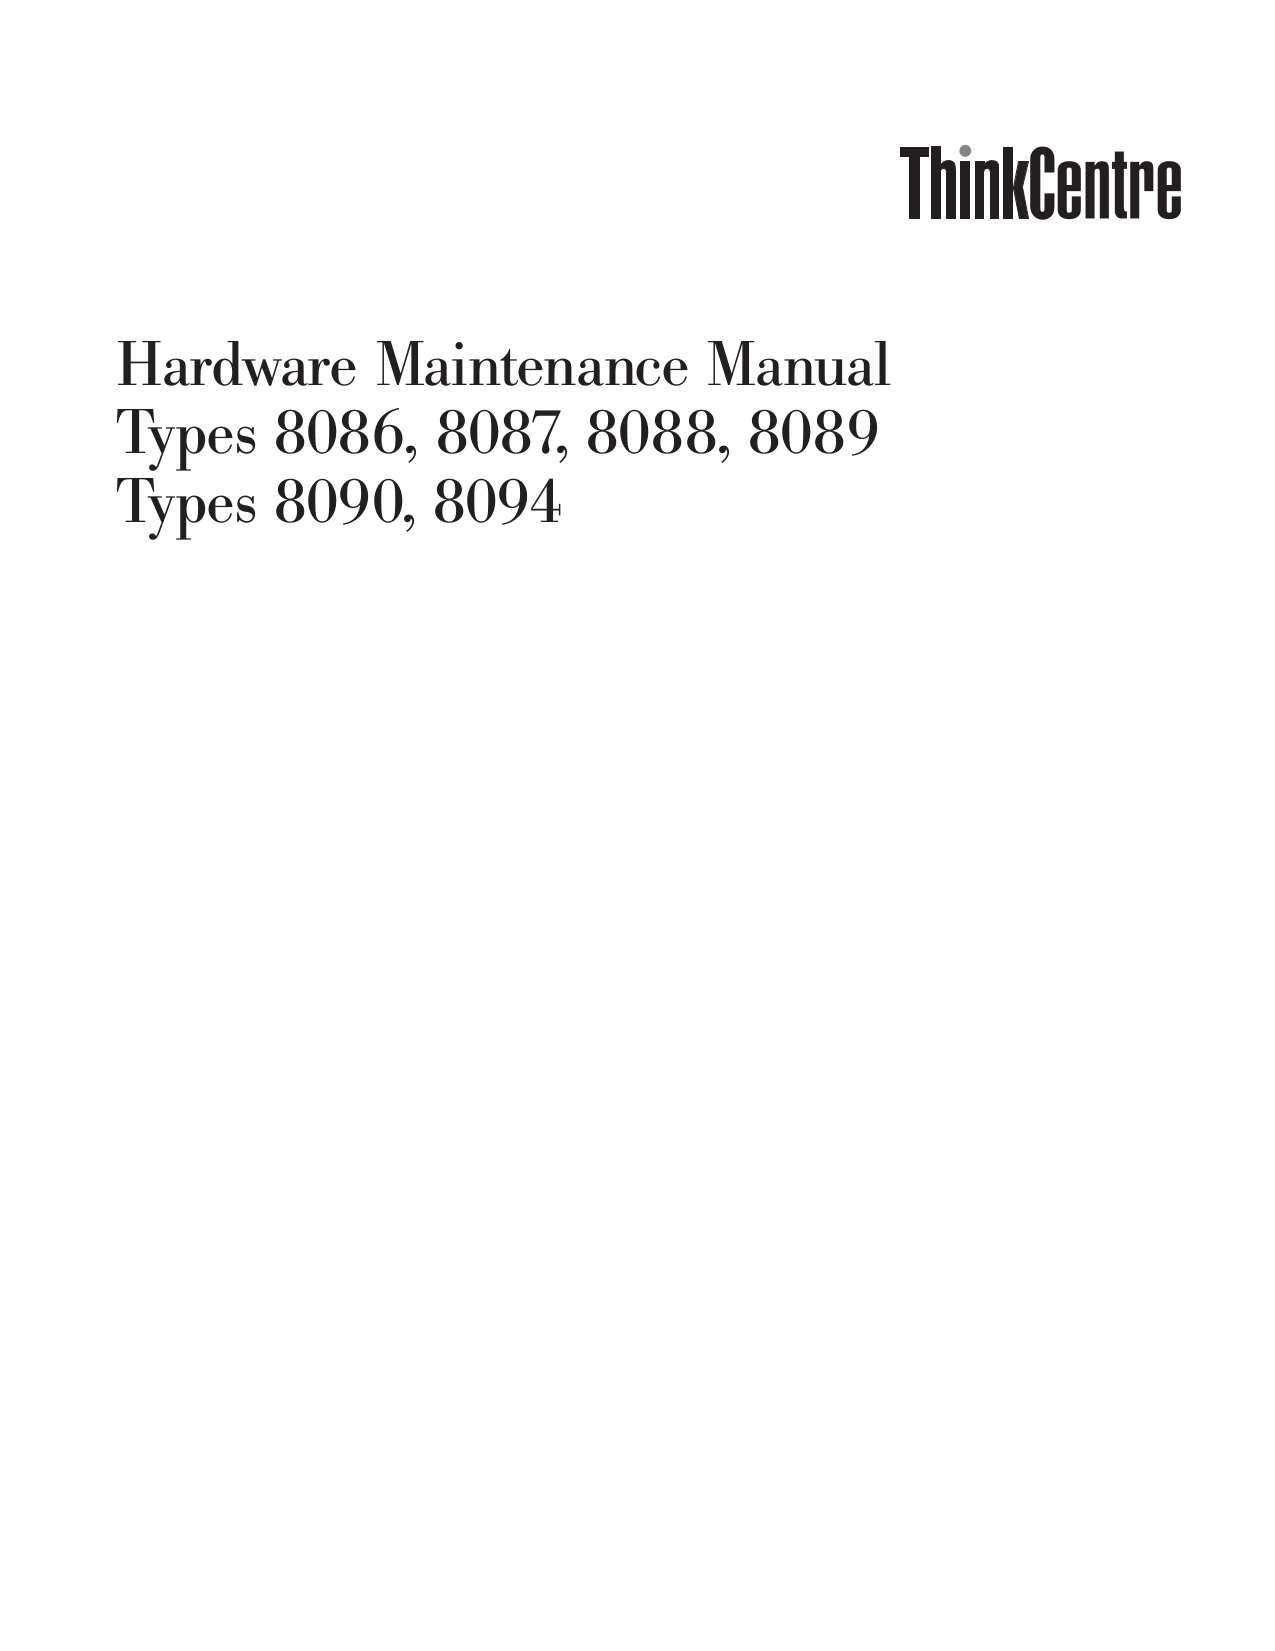 pdf for Lenovo Desktop ThinkCentre A50 8089 manual